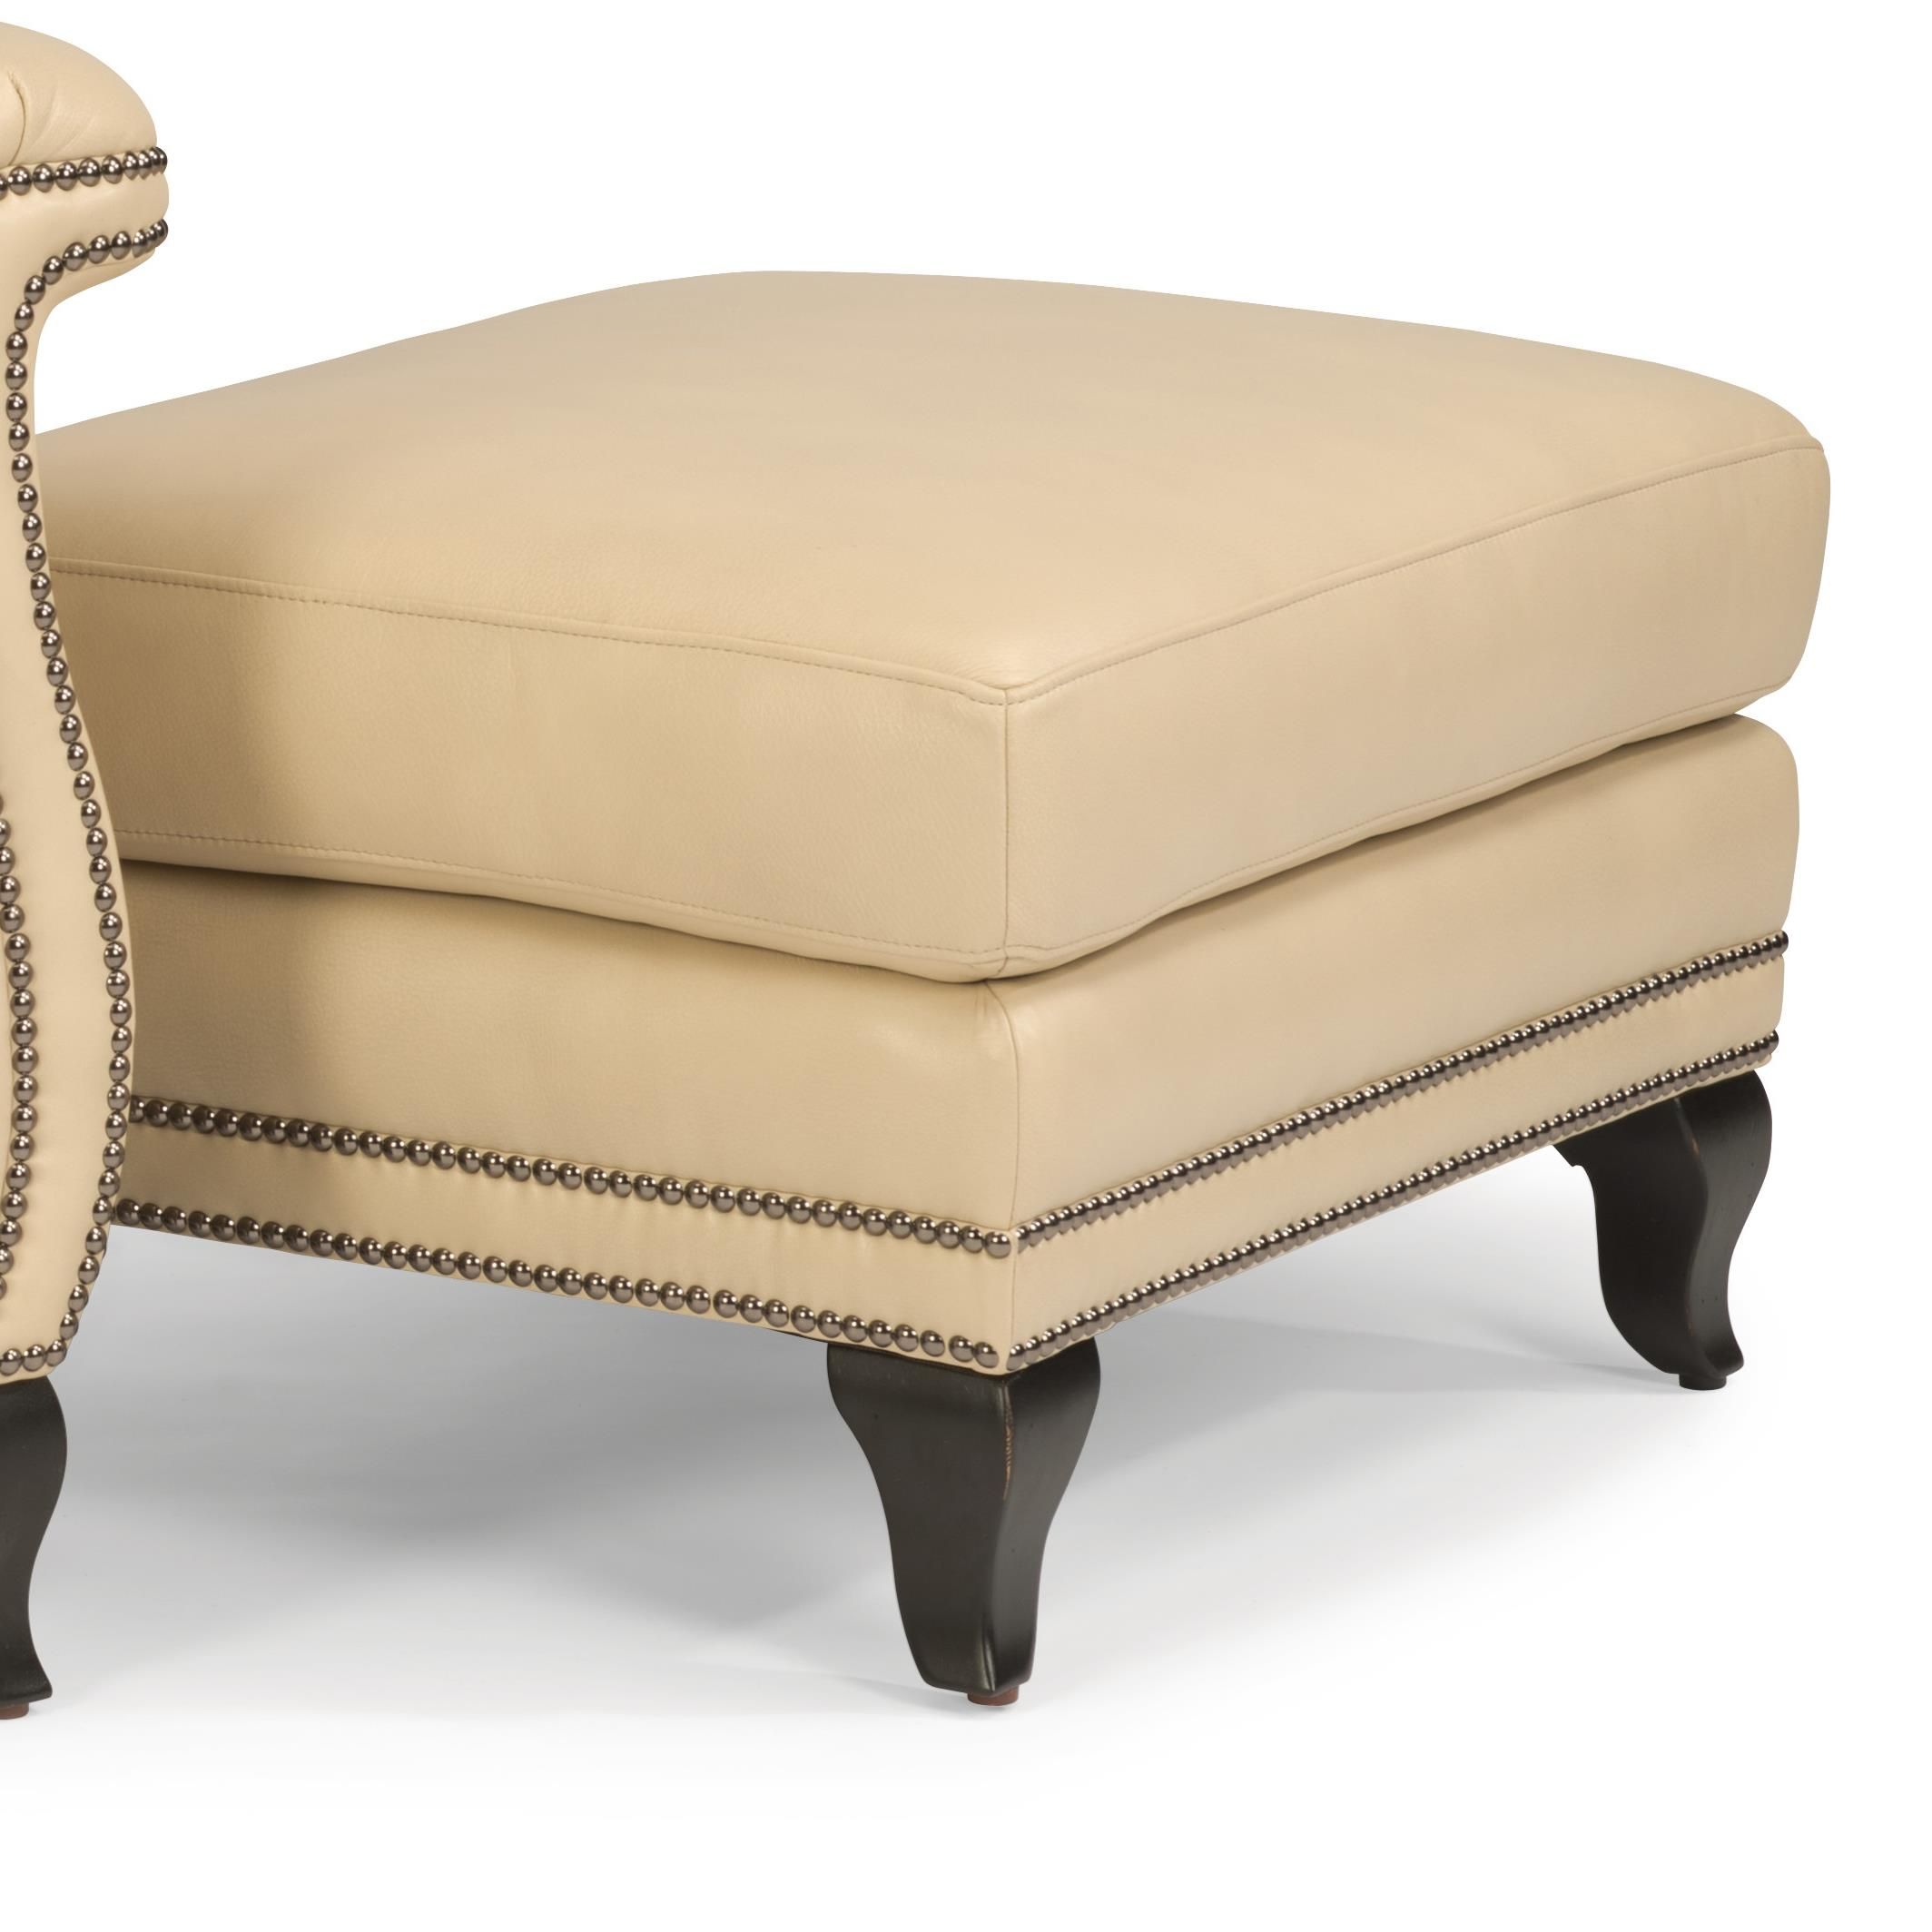 Flexsteel Latitudes-Sting Ray Ottoman - Item Number: 1256-08-LSP-86